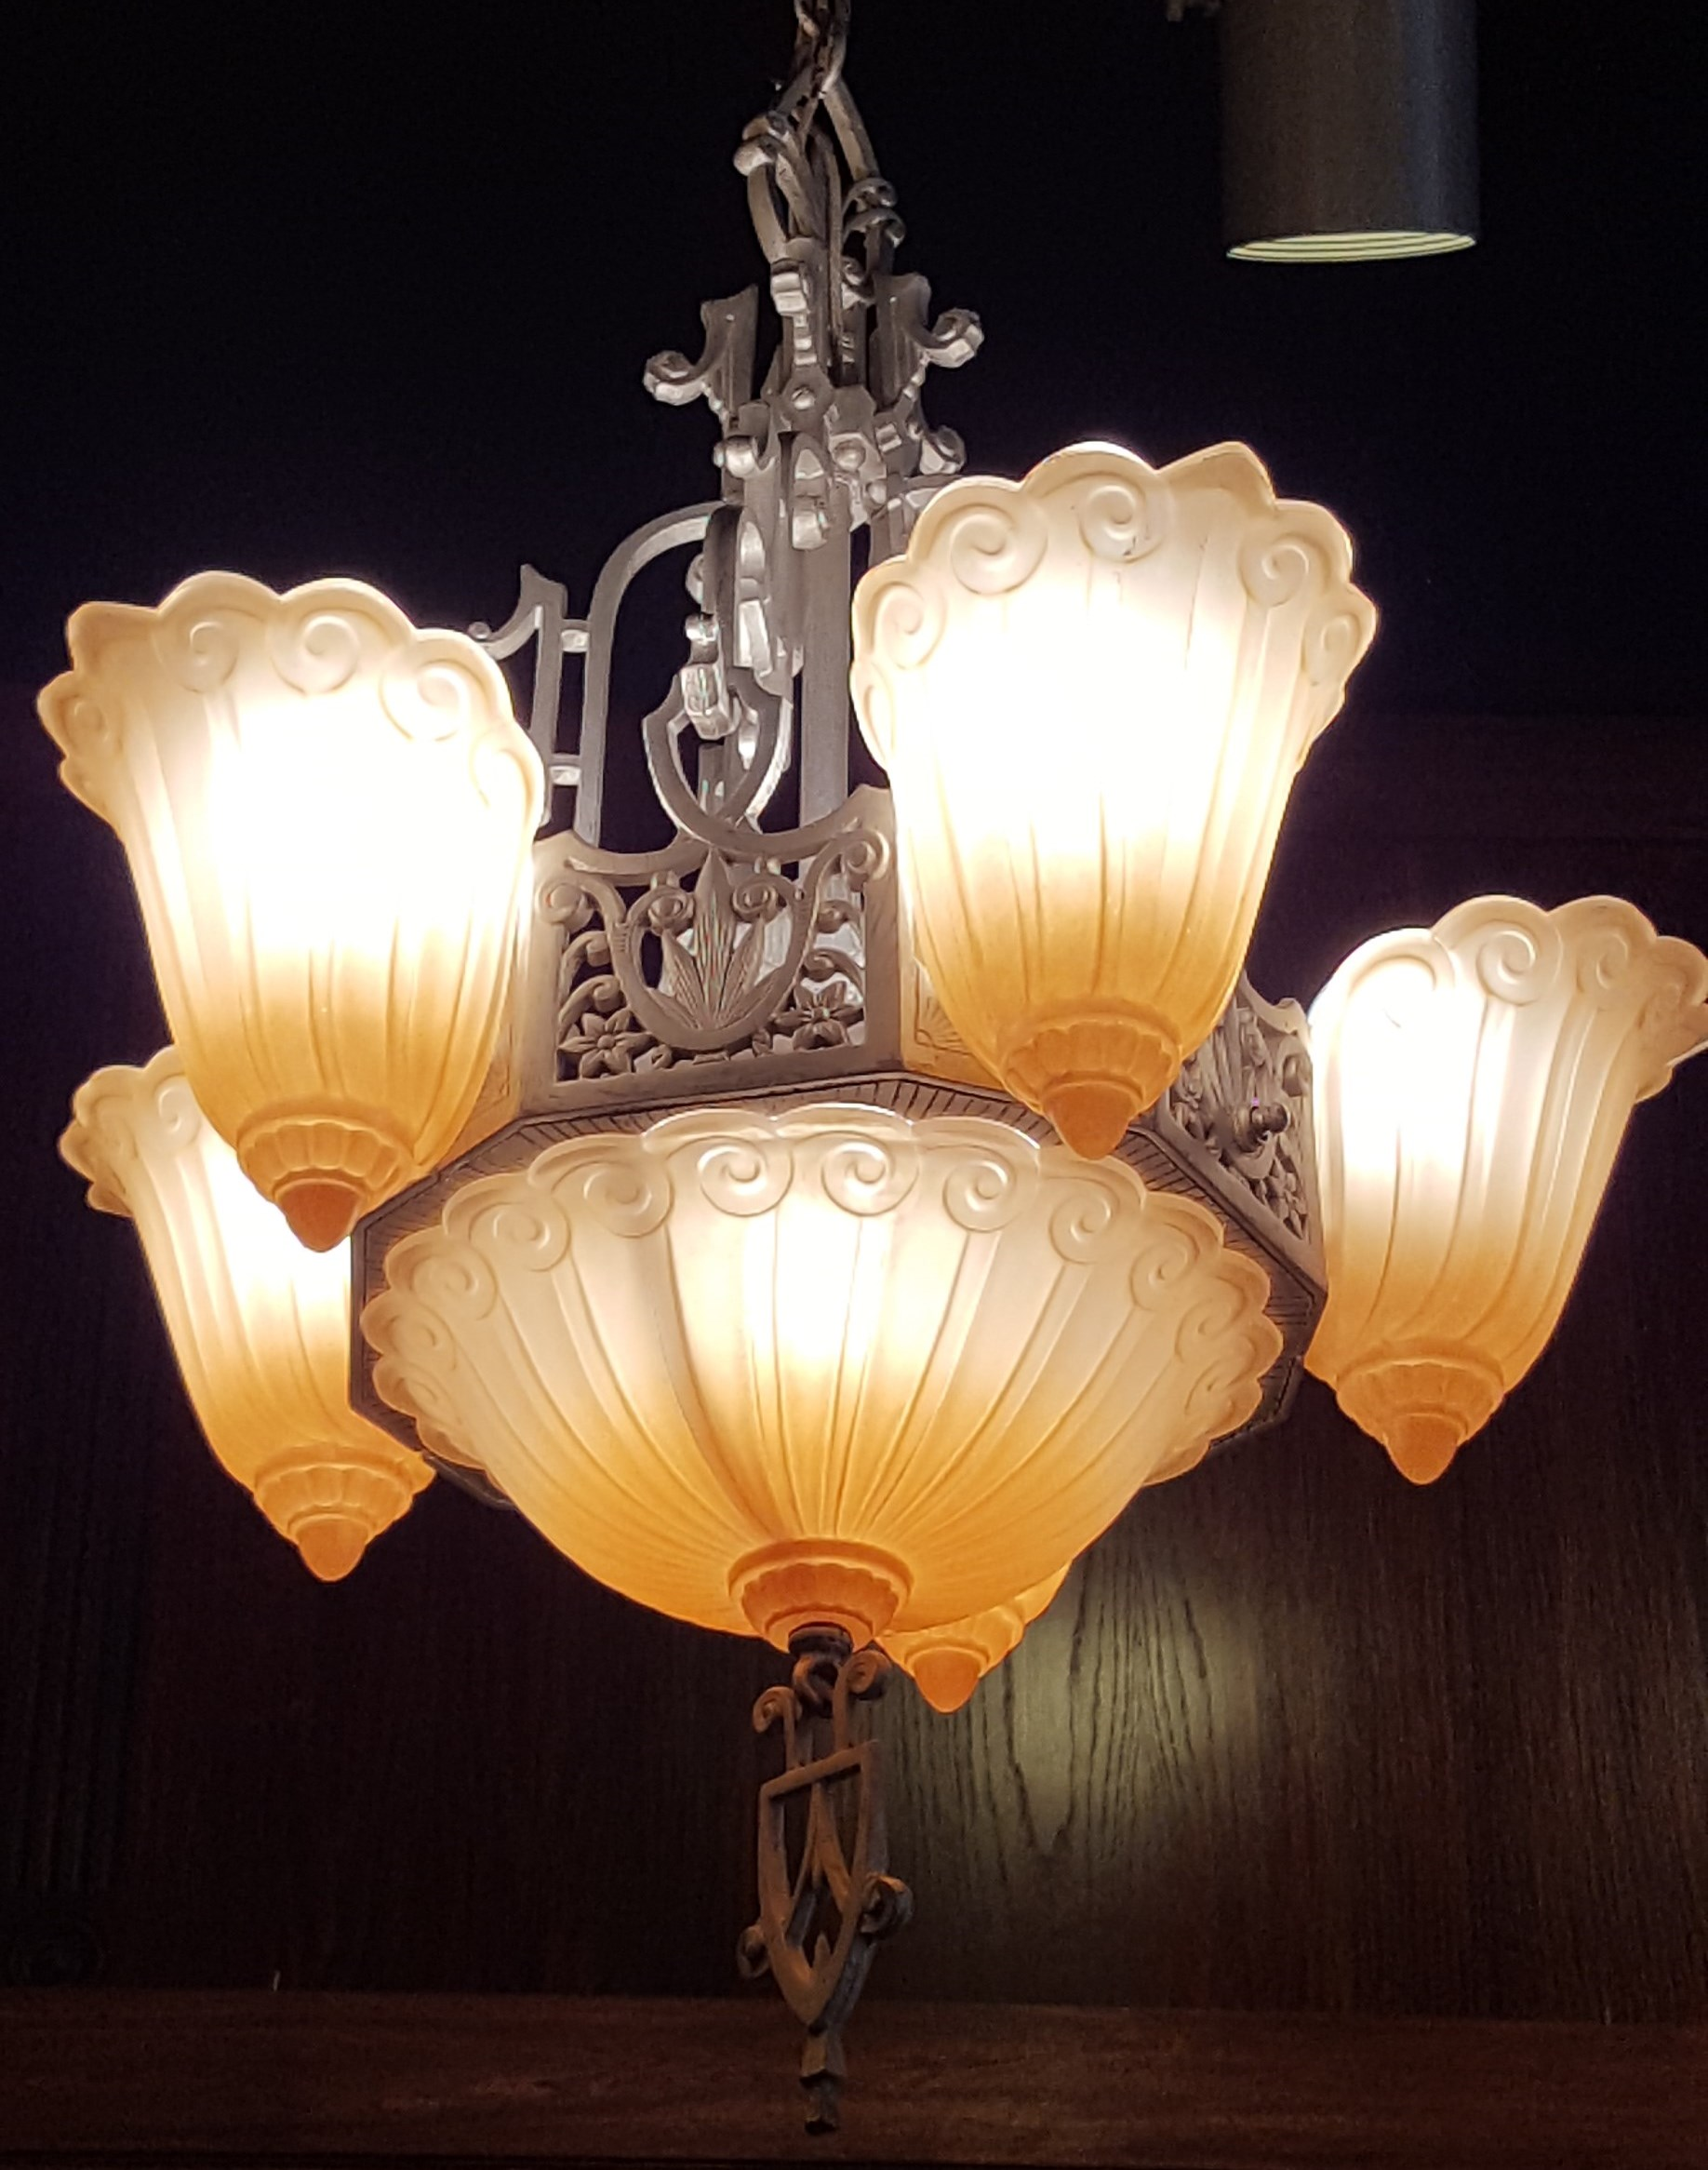 antiques gilboy img original vintage chandelier deco french period beauty antique s lily circa art